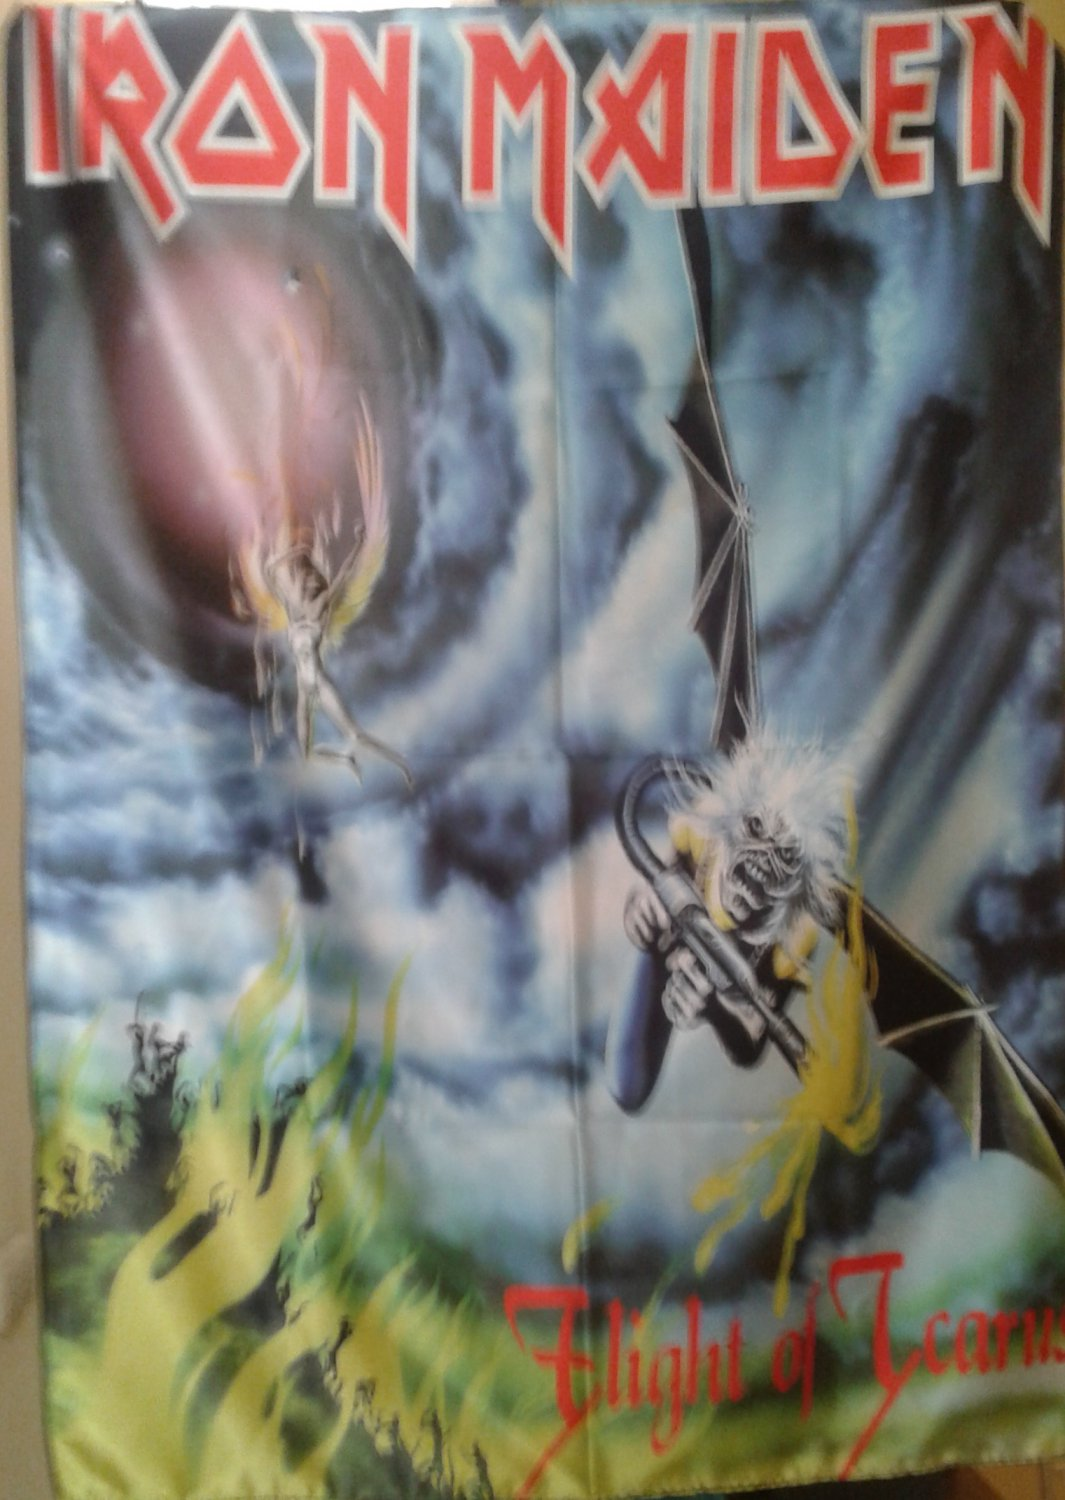 IRON MAIDEN Flight of Icarus FLAG CLOTH POSTER WALL TAPESTRY BANNER CD LP